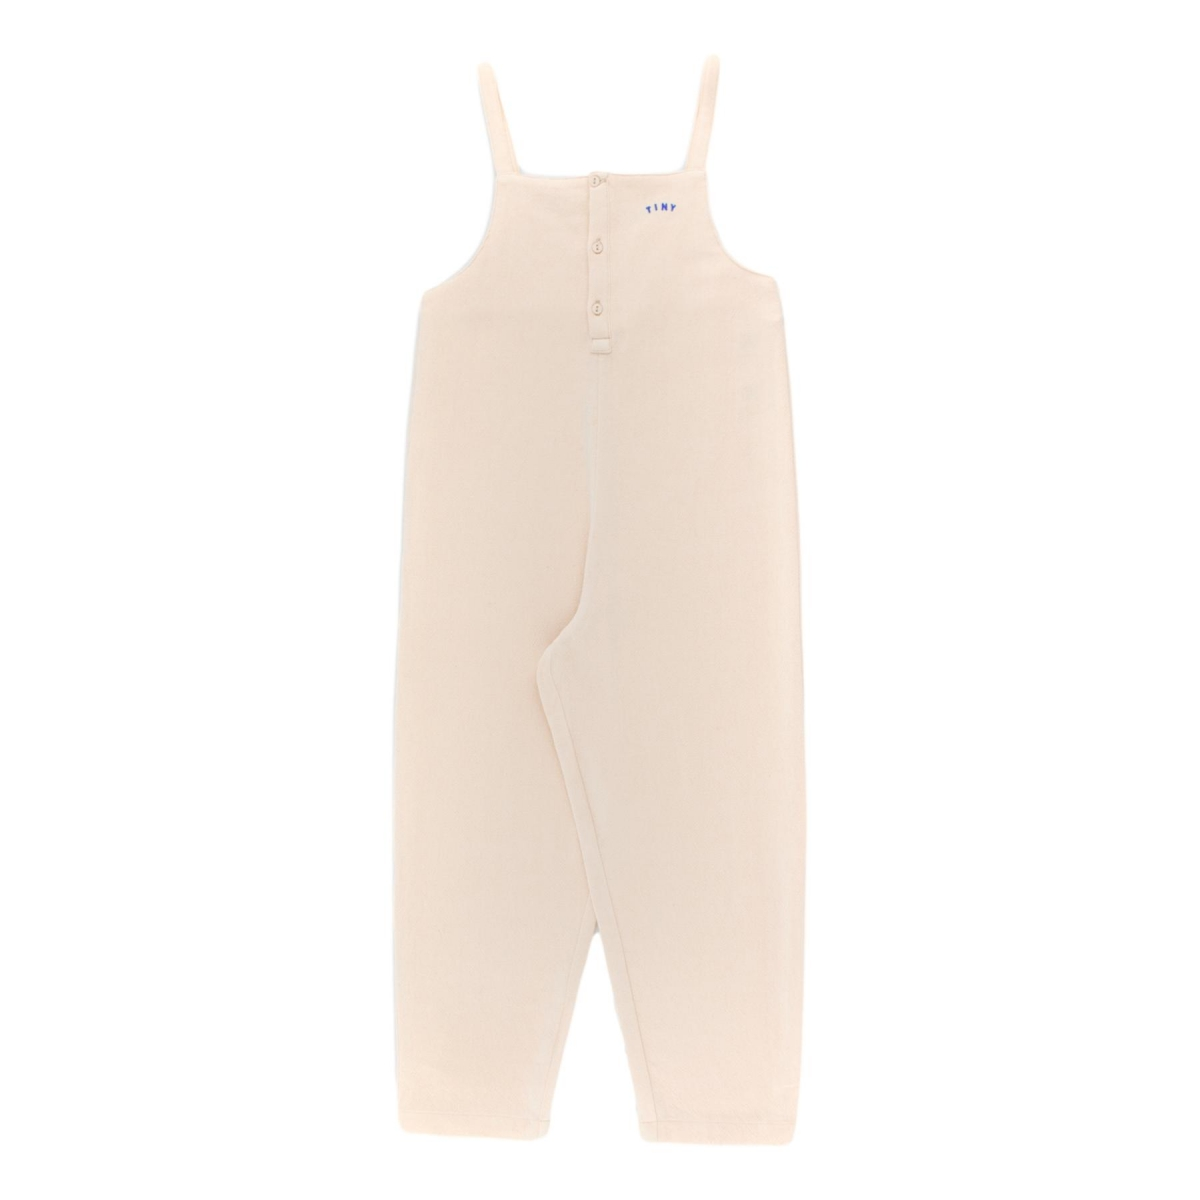 Tiny Cottons - Solid One-Piece ecru - 1